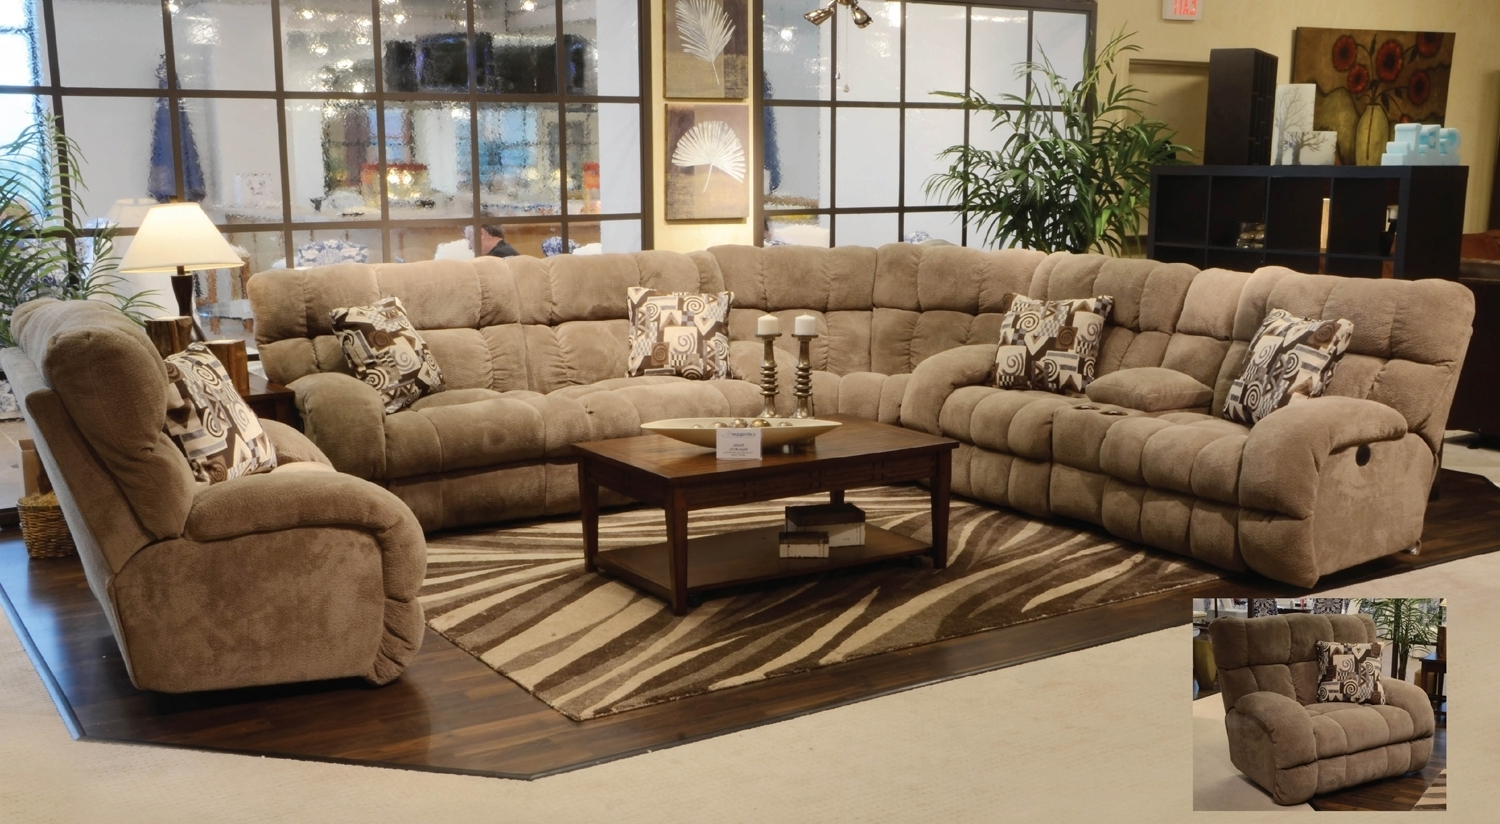 Sofa : Fascinating Large Sectional Sofa Modern Sofas Large Within 2018 Extra Large U Shaped Sectionals (View 9 of 20)